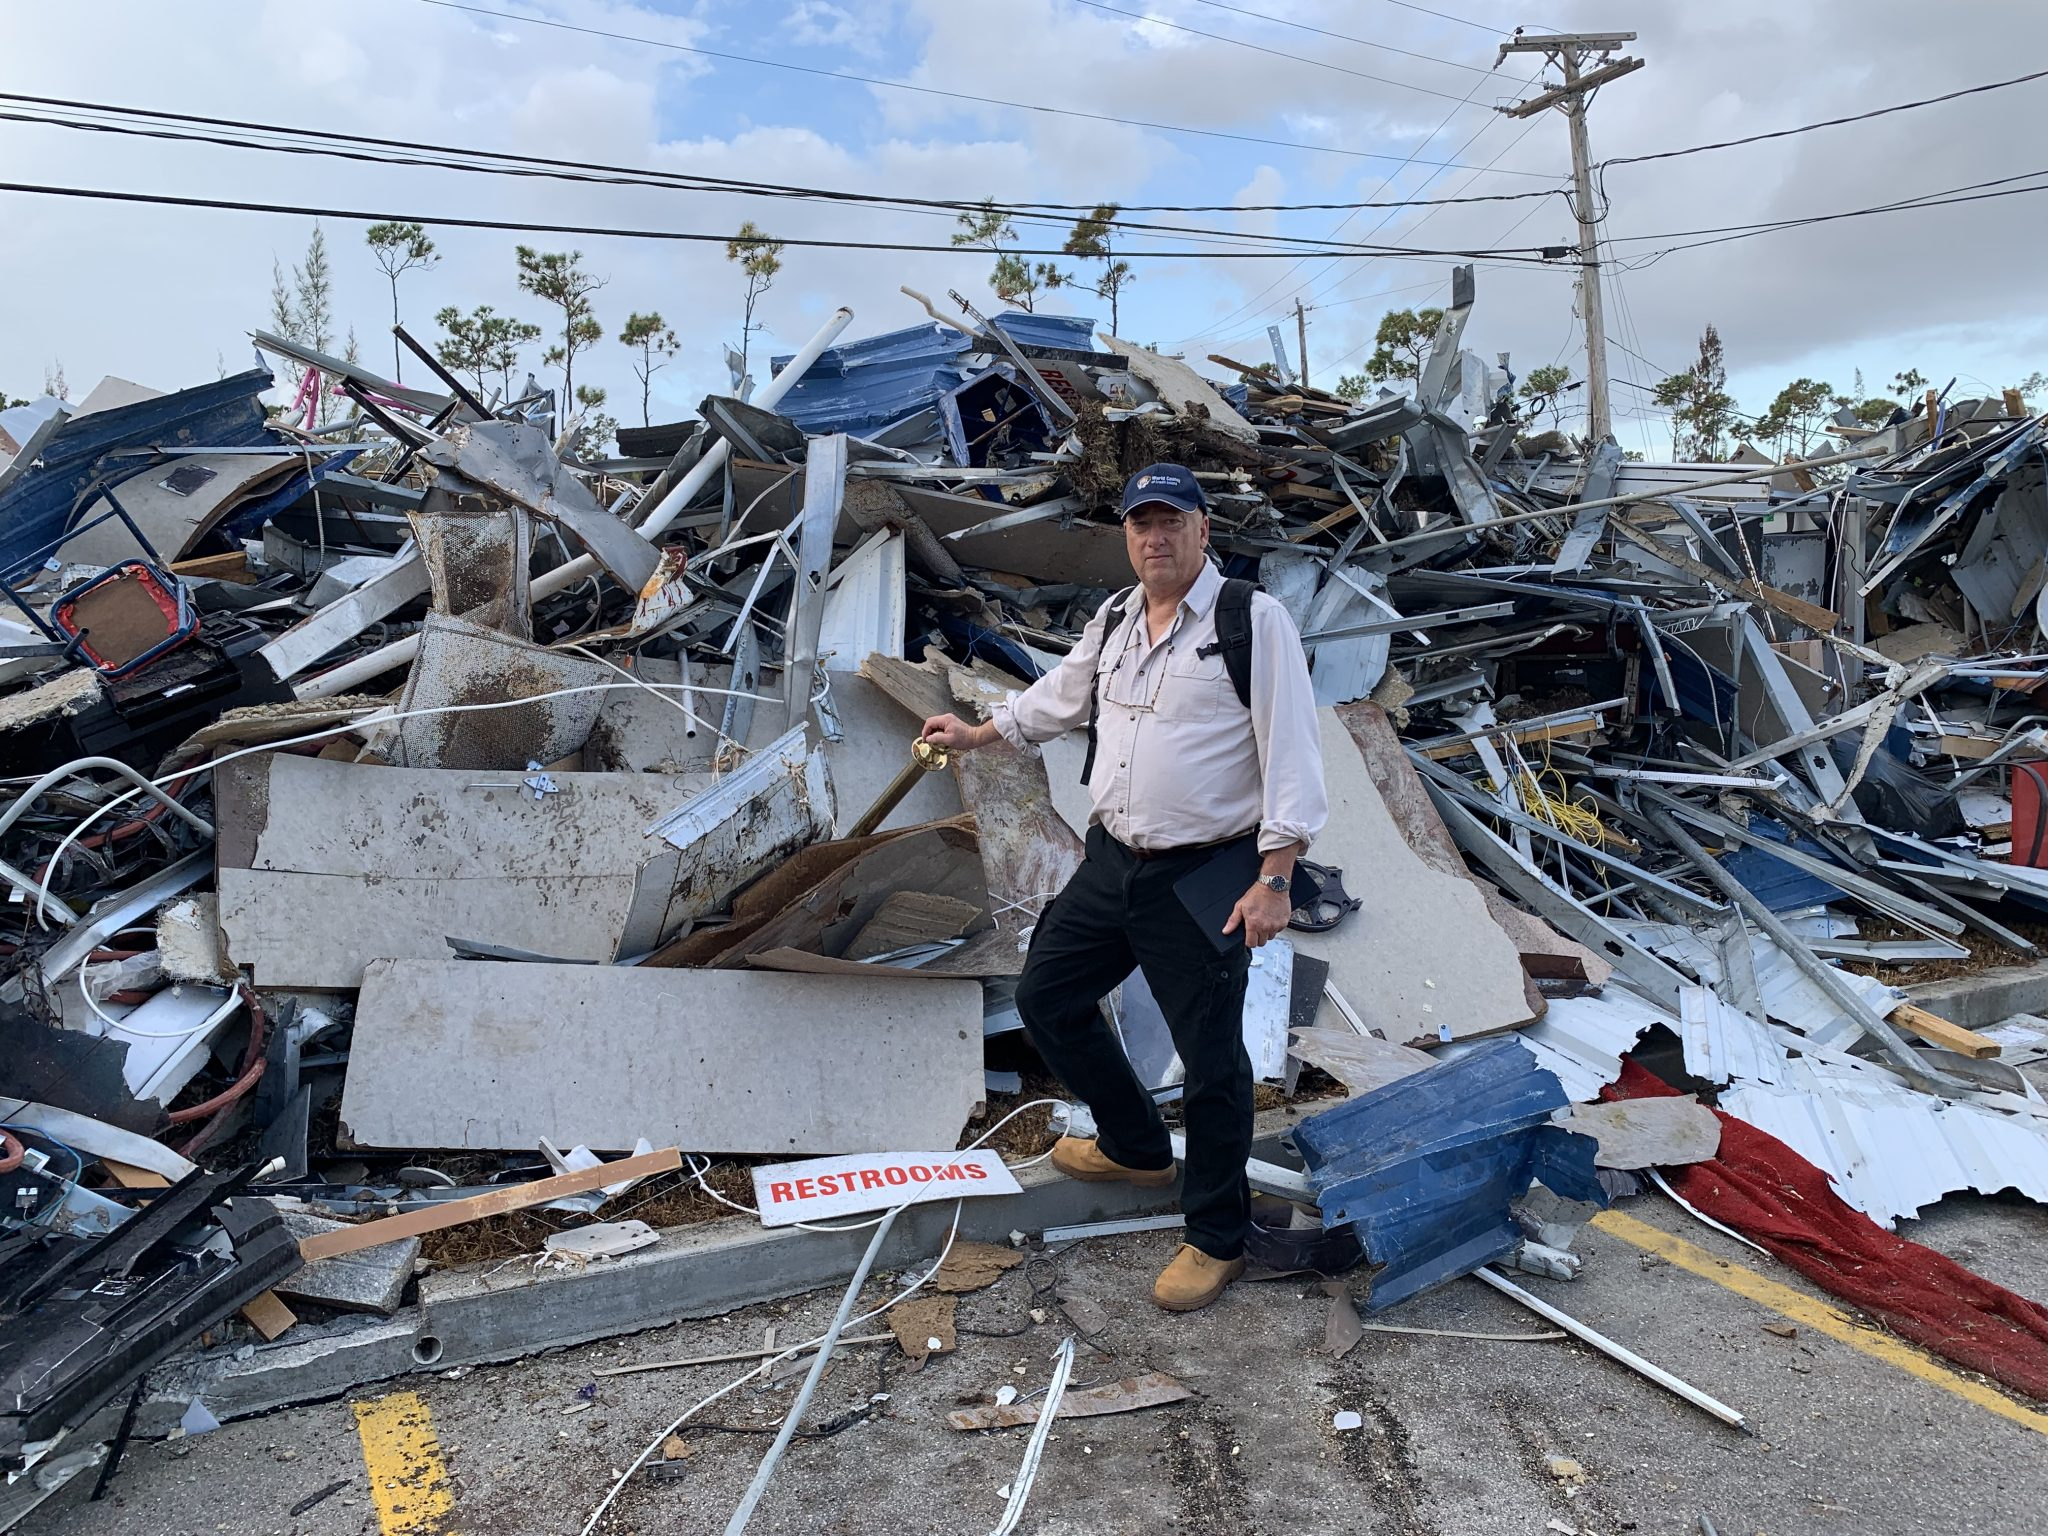 American Heritage officials assist credit unions damaged by Hurricane Dorian